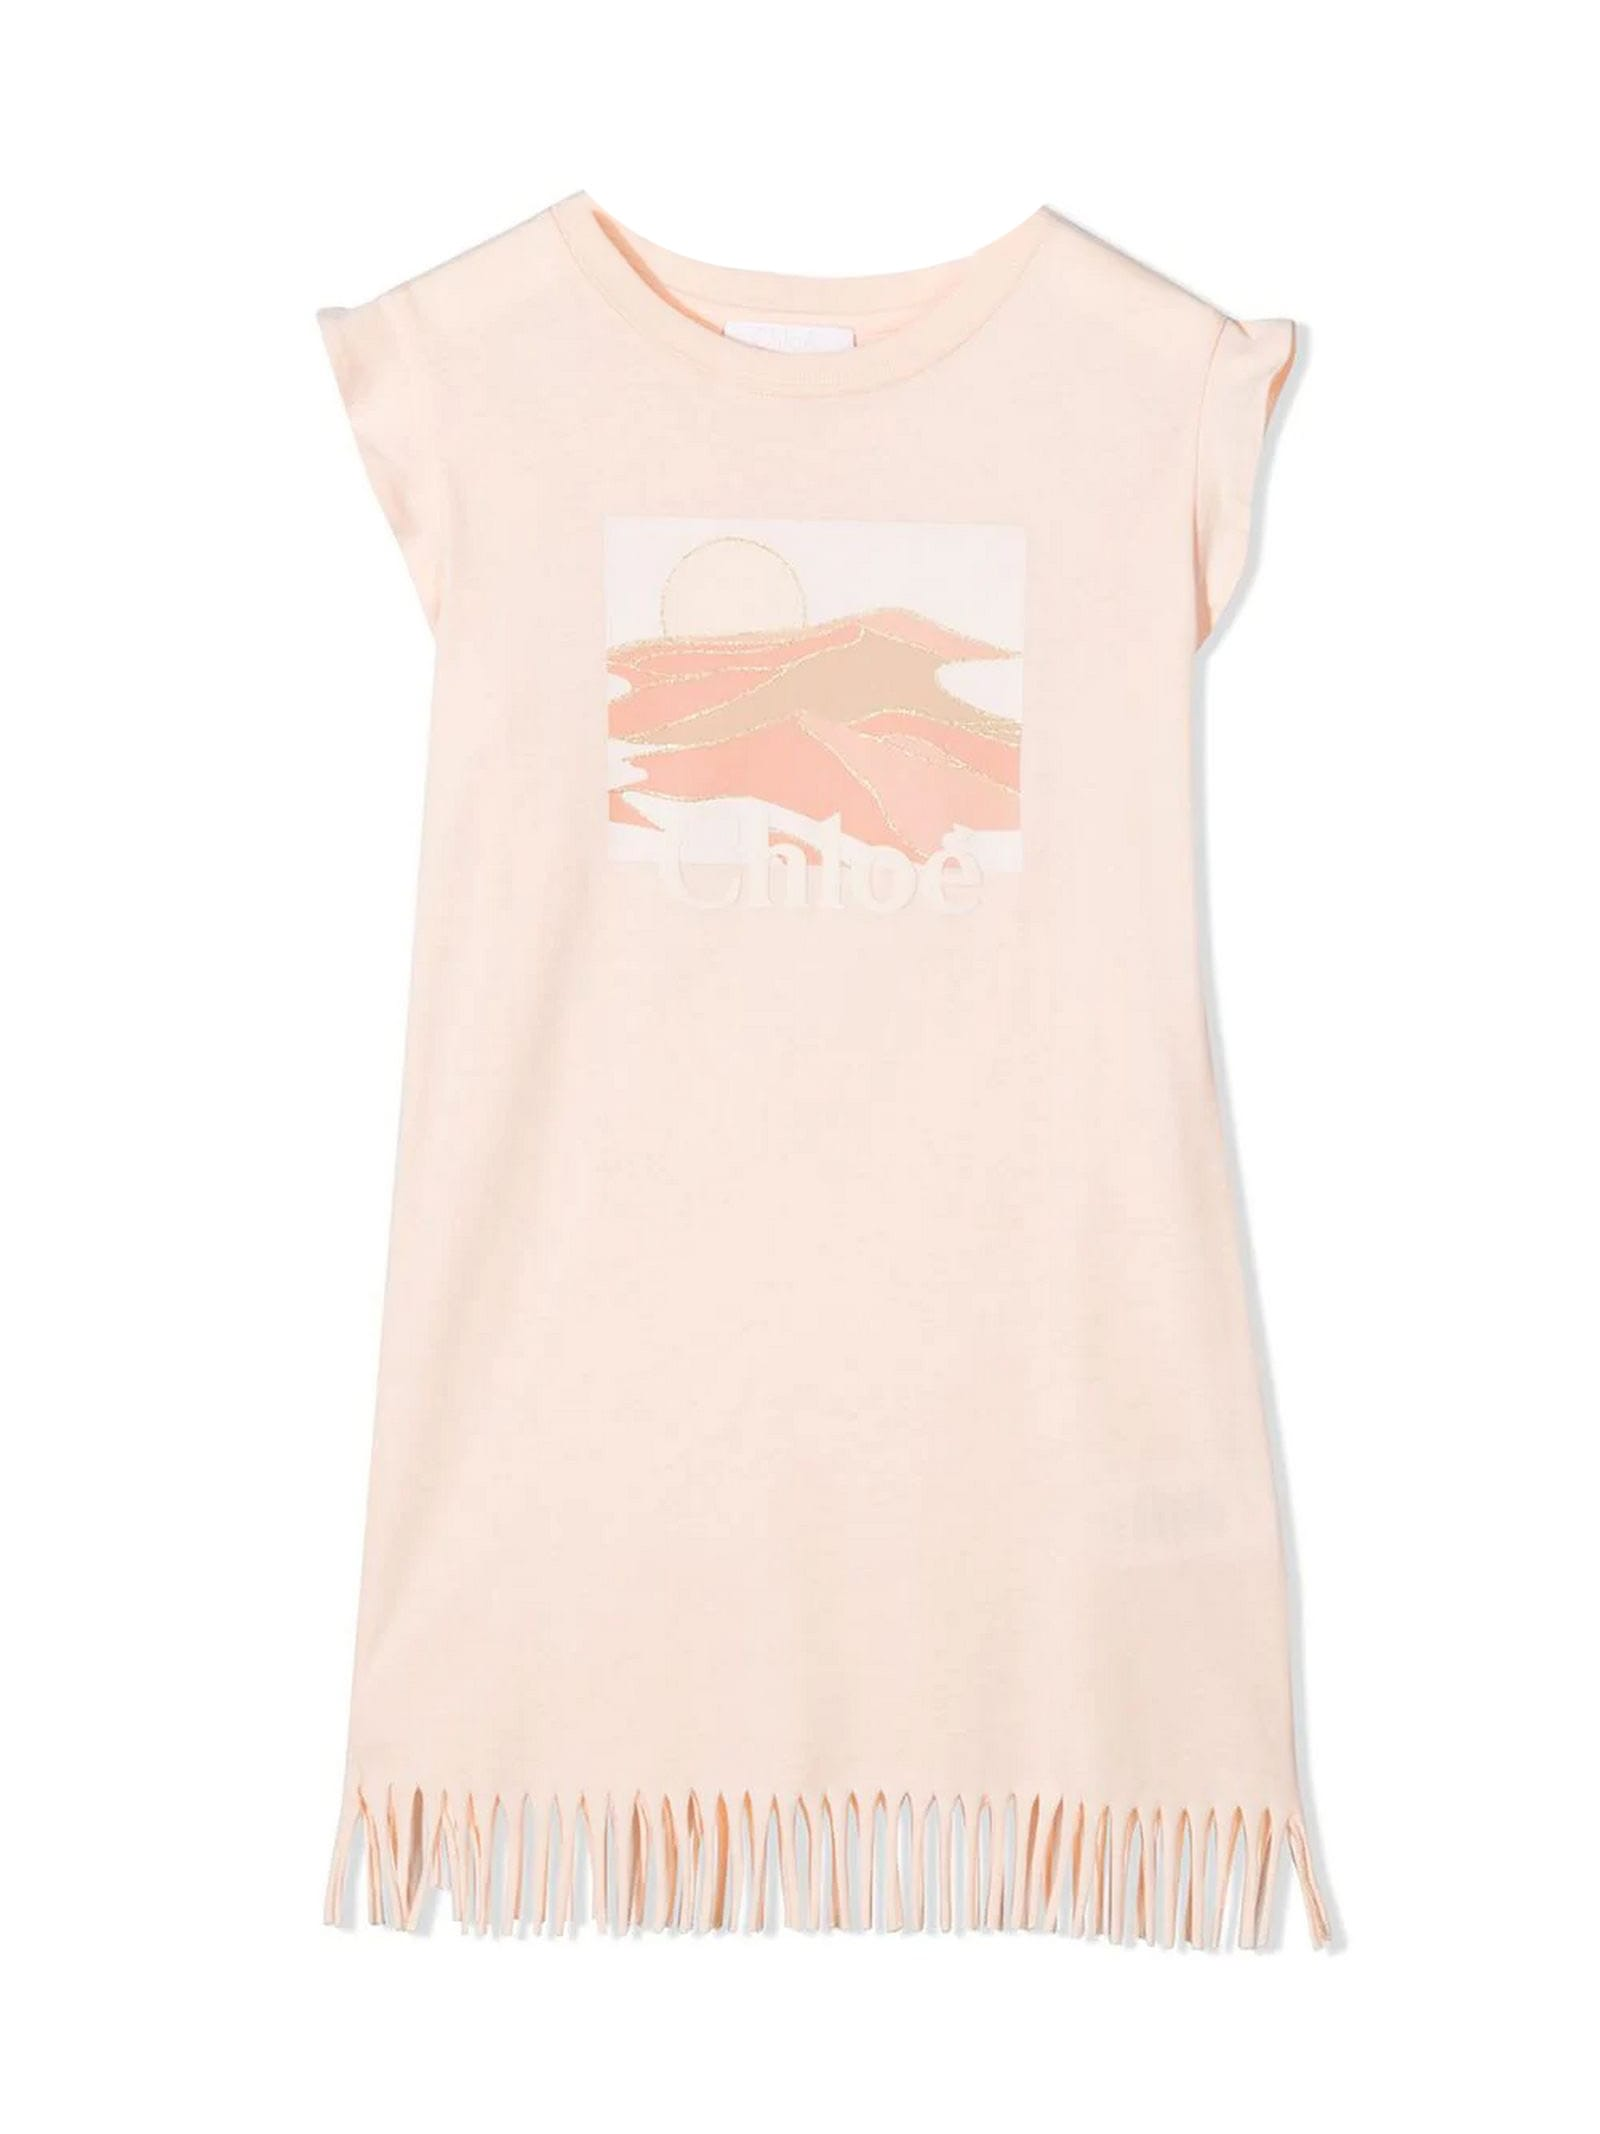 Chloé Pink Cotton Dress